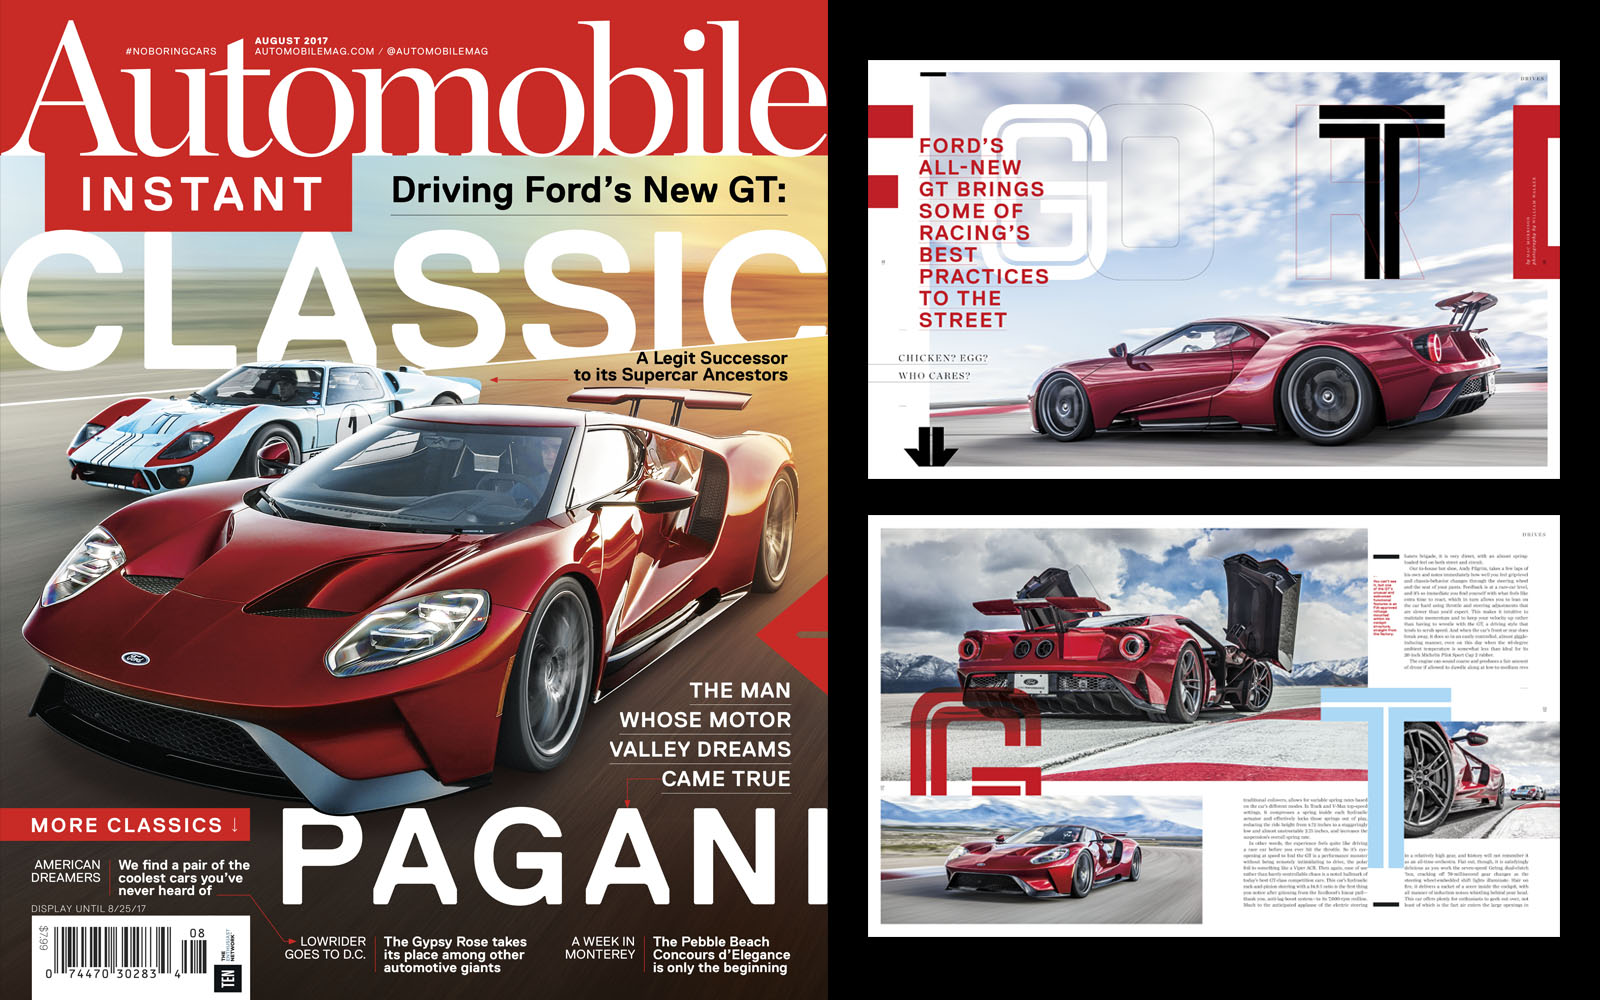 Automobile August 2017 Issue